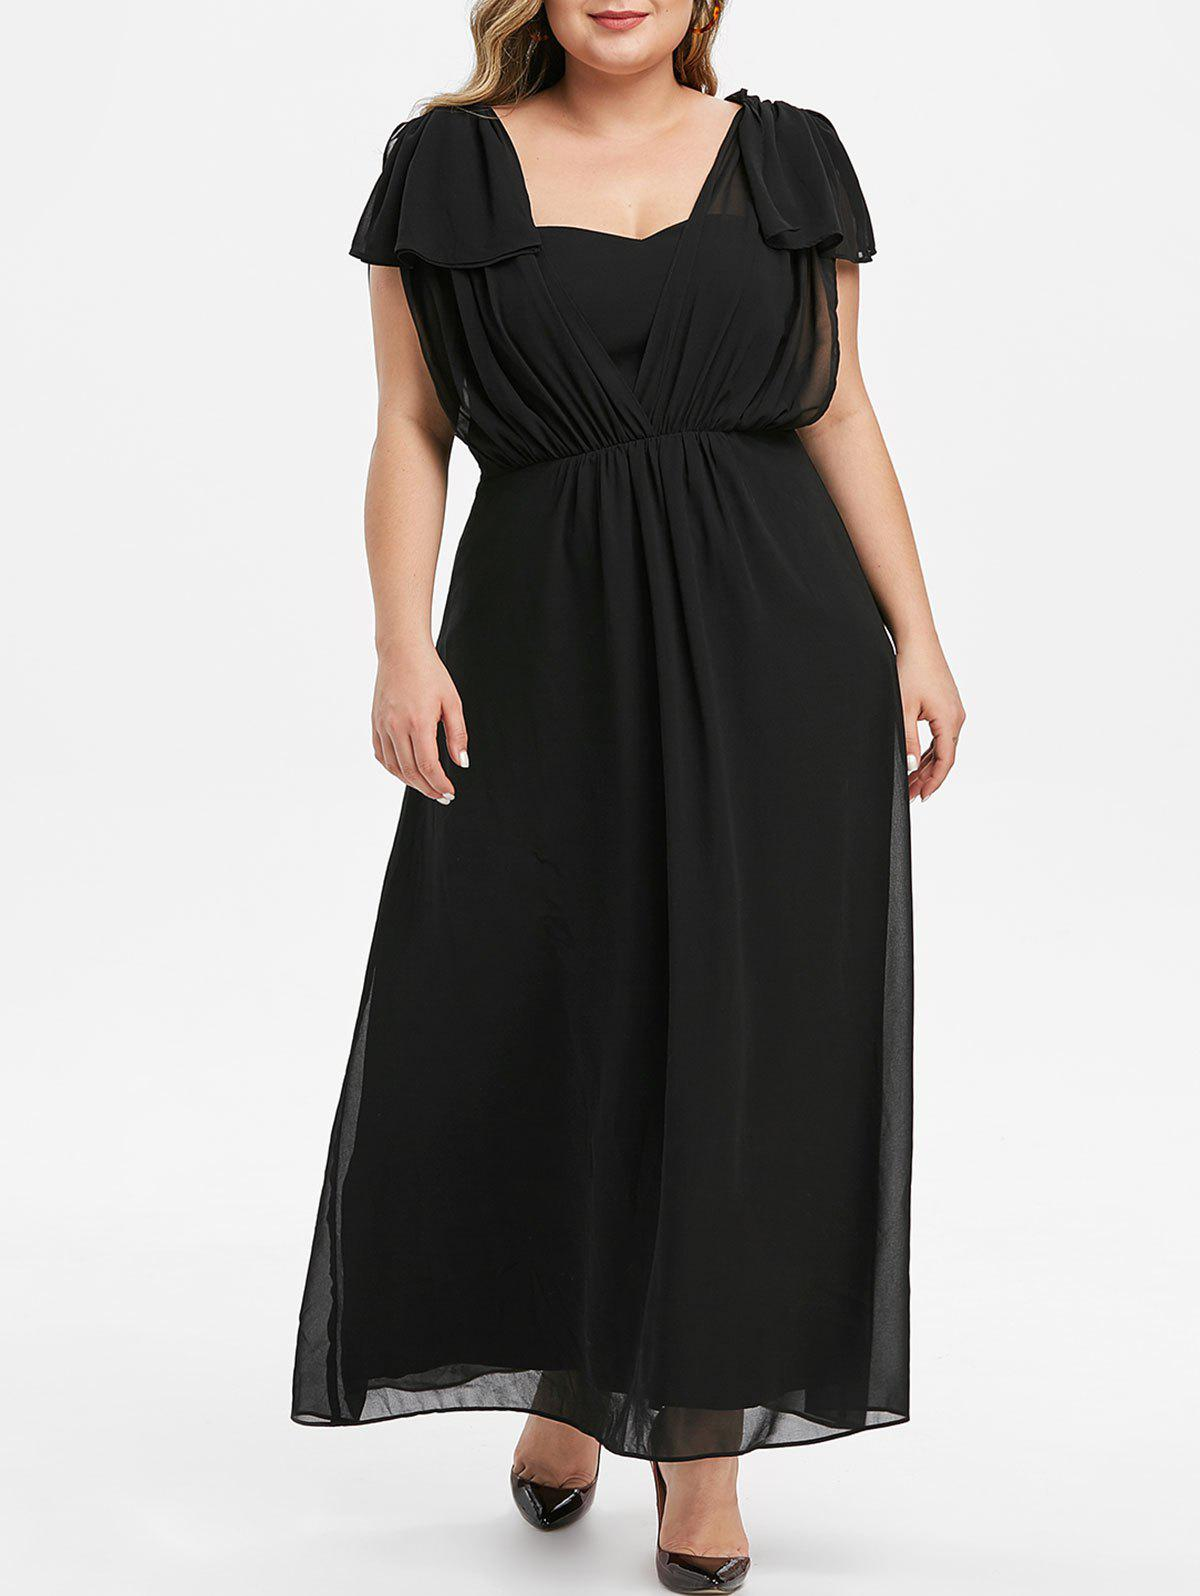 Plus Size High Waist Maxi Party Dress - BLACK 3X